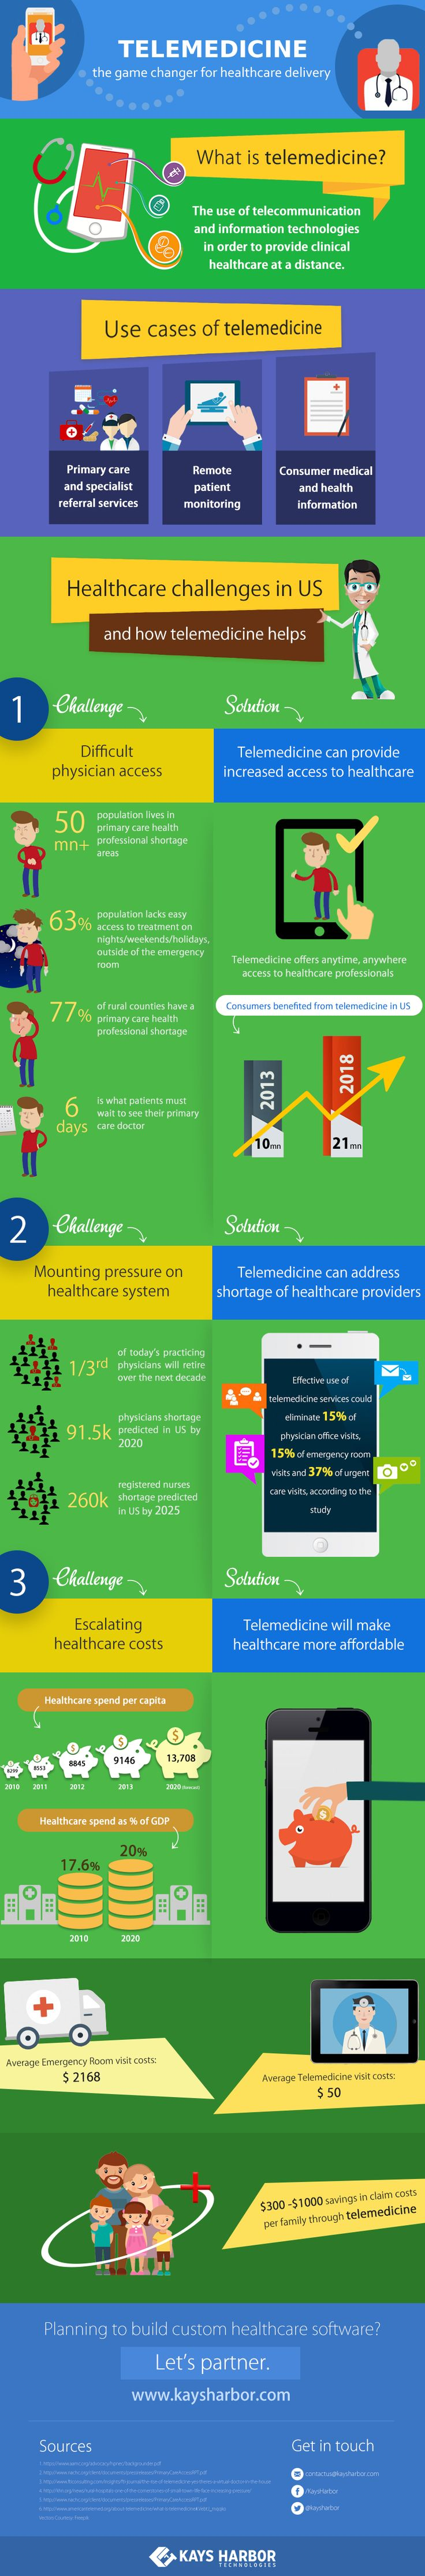 Telemedicine refers to the usage of telecommunication methods to provide healthcare and medical services remotely. With healthcare delivery already under pressure, telemedicine is poised to tackle lot many challenges of the industry head on. This infographic by Kays Harbor Technologies is an attempt to highlight the benefits of telemedicine.